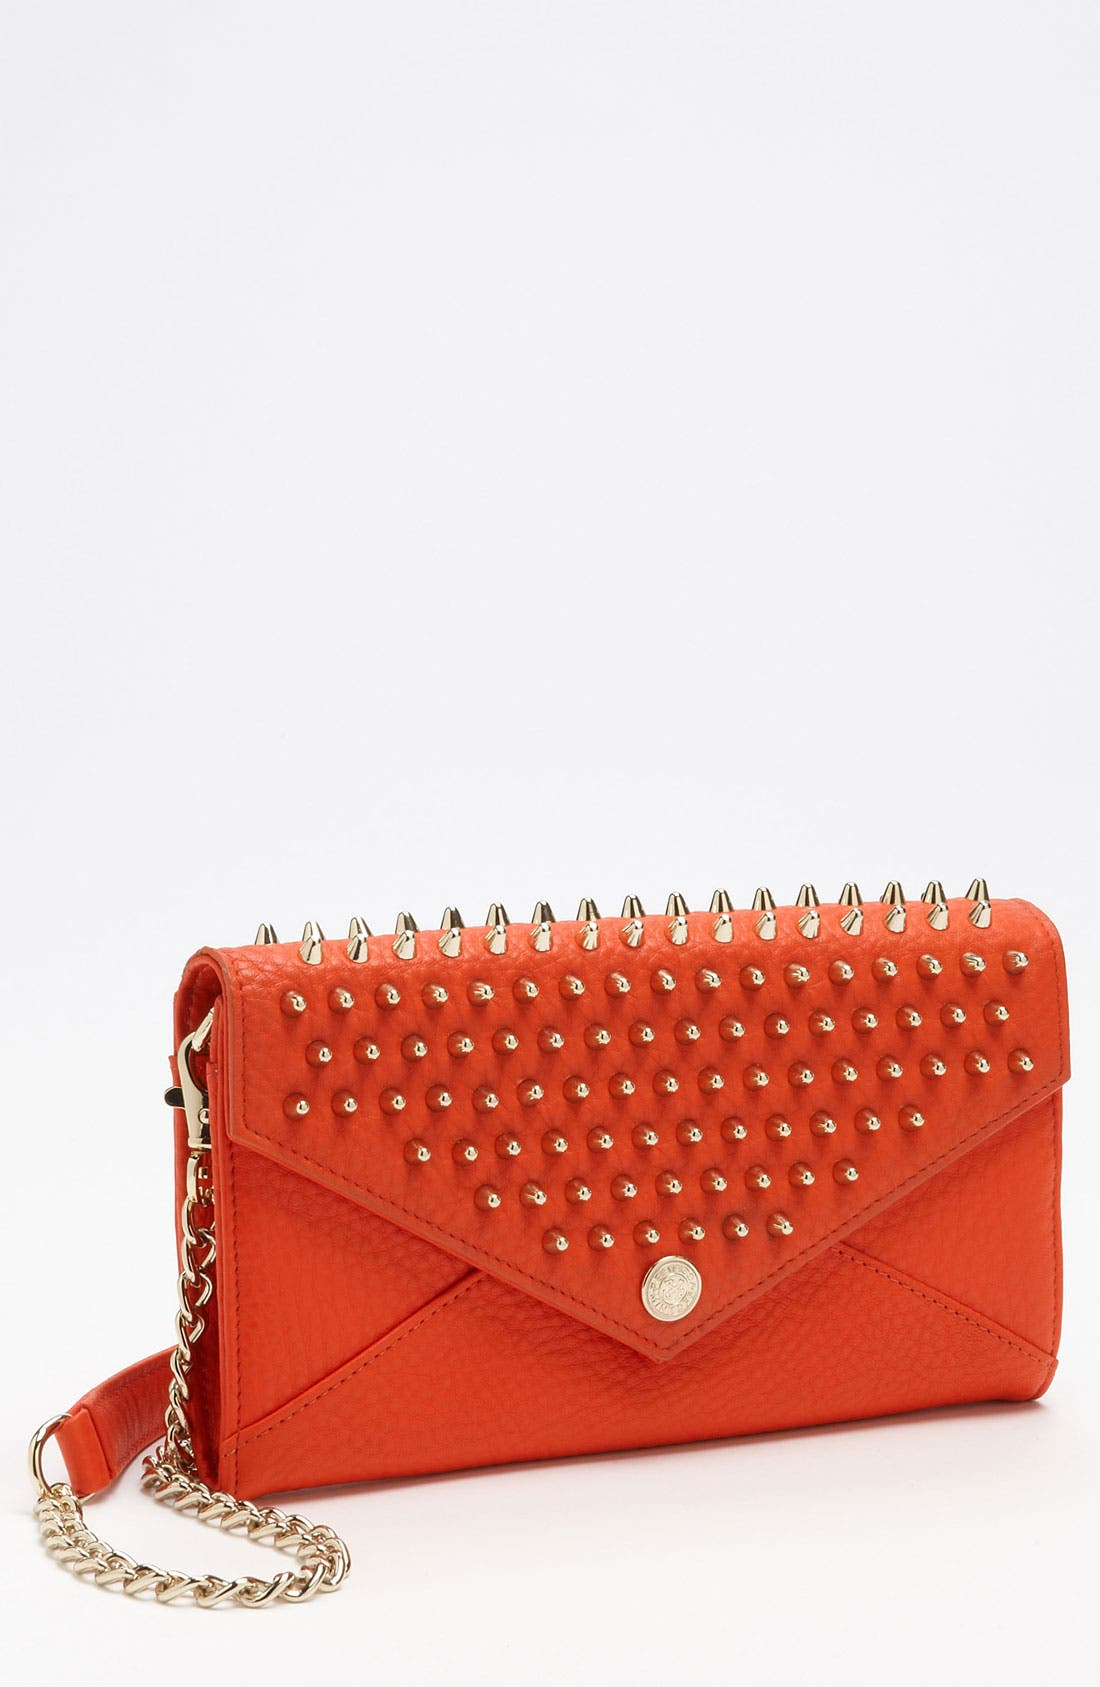 Alternate Image 1 Selected - Rebecca Minkoff Studded Wallet on a Chain